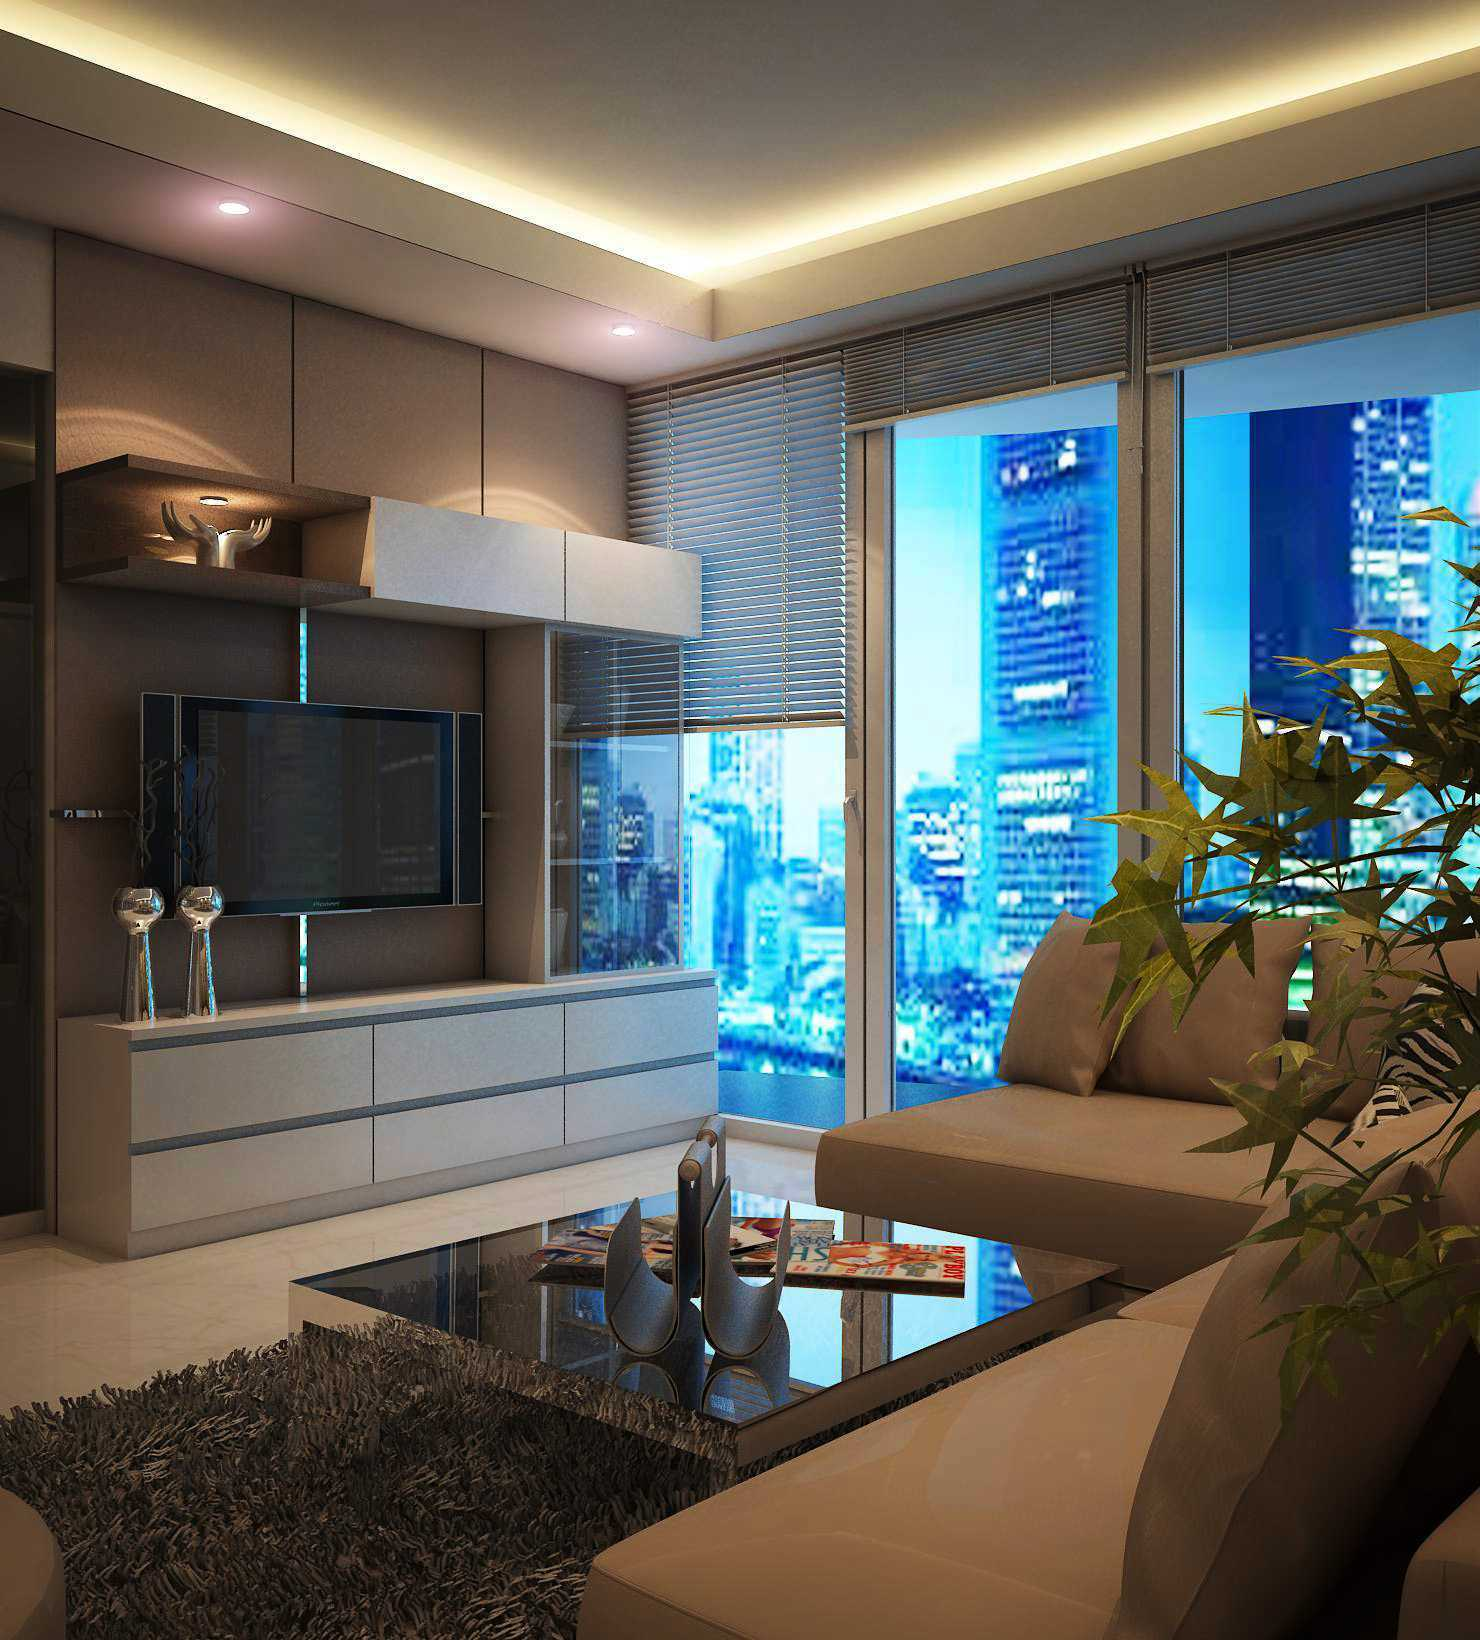 Expo Tje. Aa.aa.bsc.ba.ma The Suitroom With Office Function Apartment Jakarta, Indonesia Green Hill Suitroom Apartment Urbanisme Living Room Modern  26537